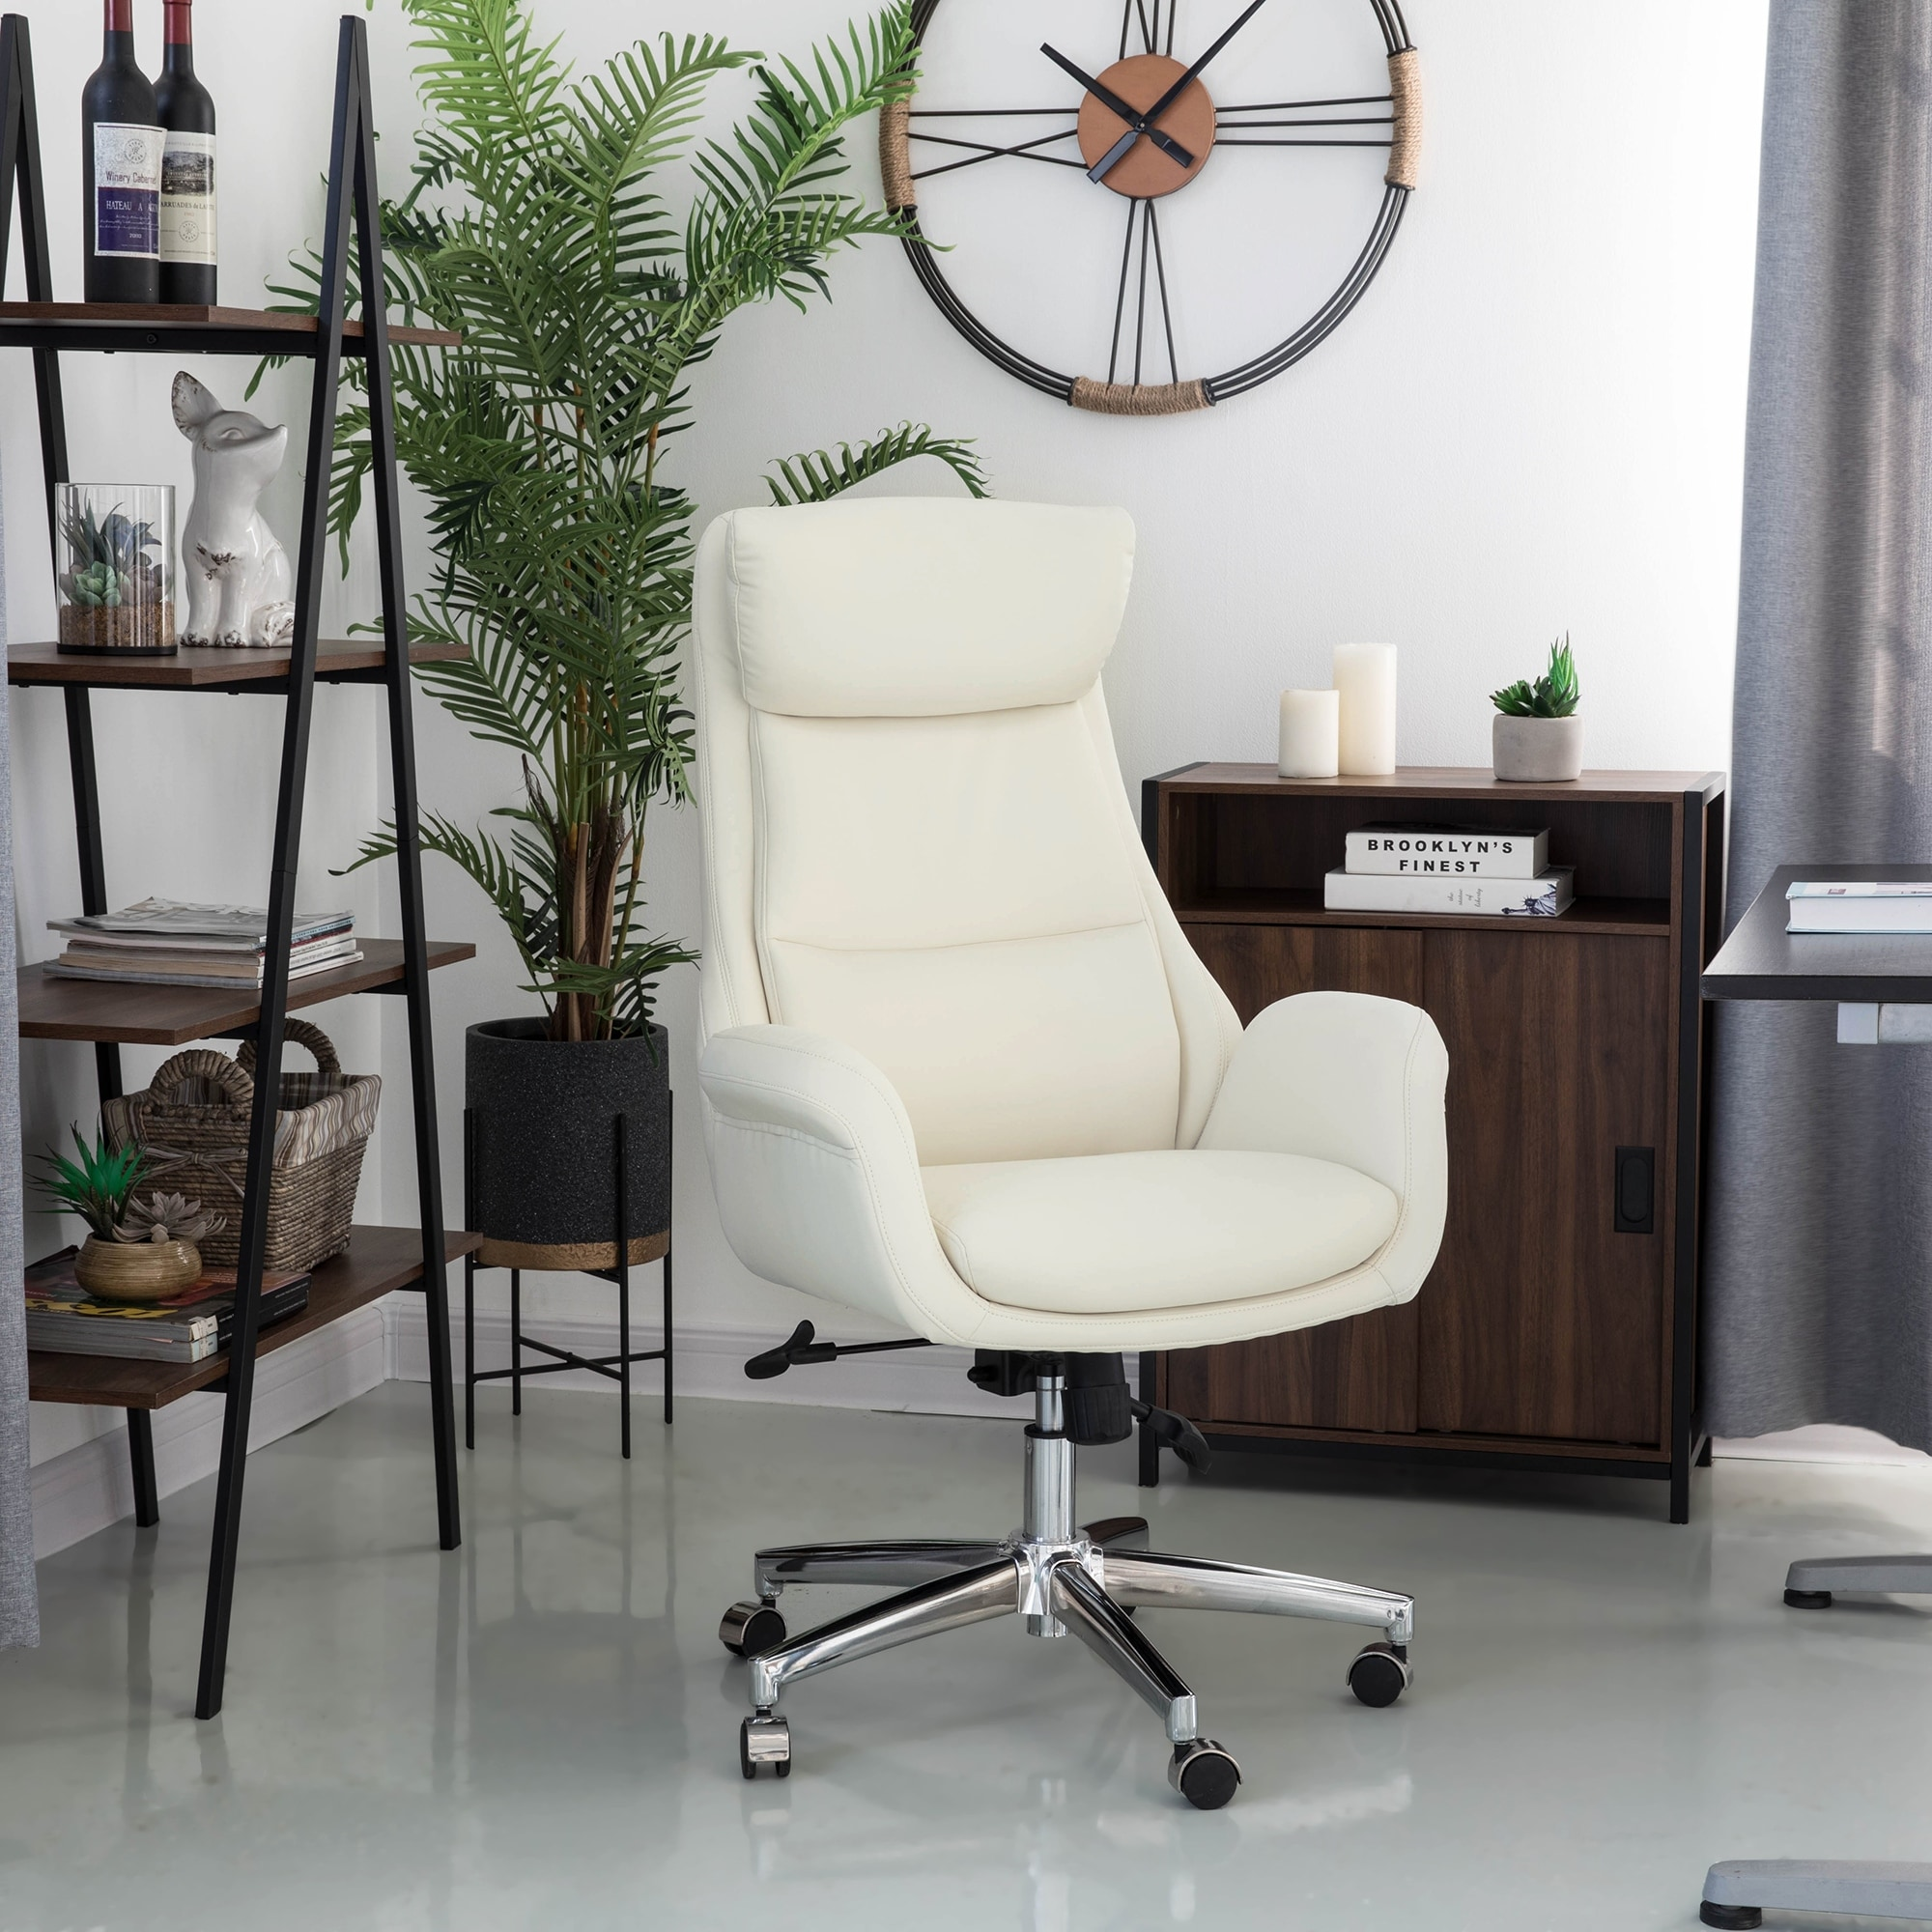 Shop Glitzhome Mid Century Modern Leatherette Adjustable Office Chair On Sale Overstock 19220425